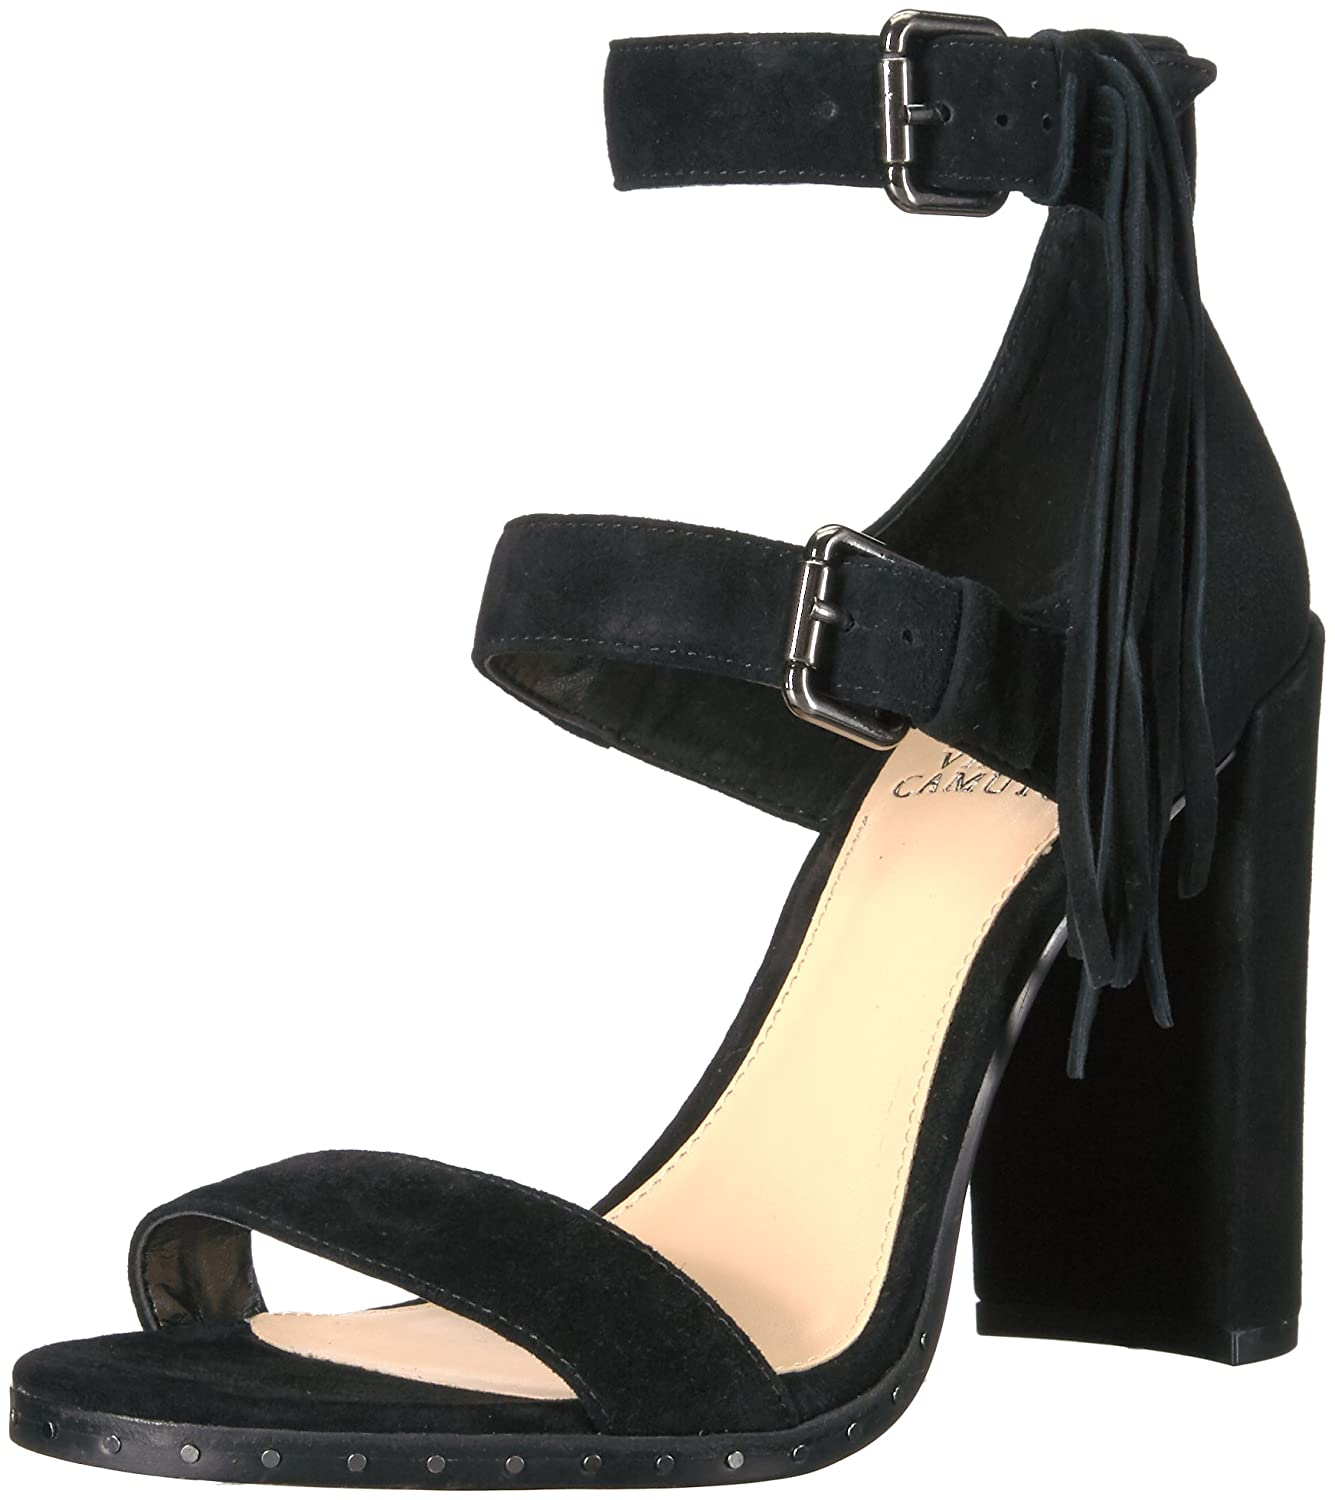 30ff3a15407e Amazon.com  Vince Camuto Women s JESINA Heeled Sandal  Shoes